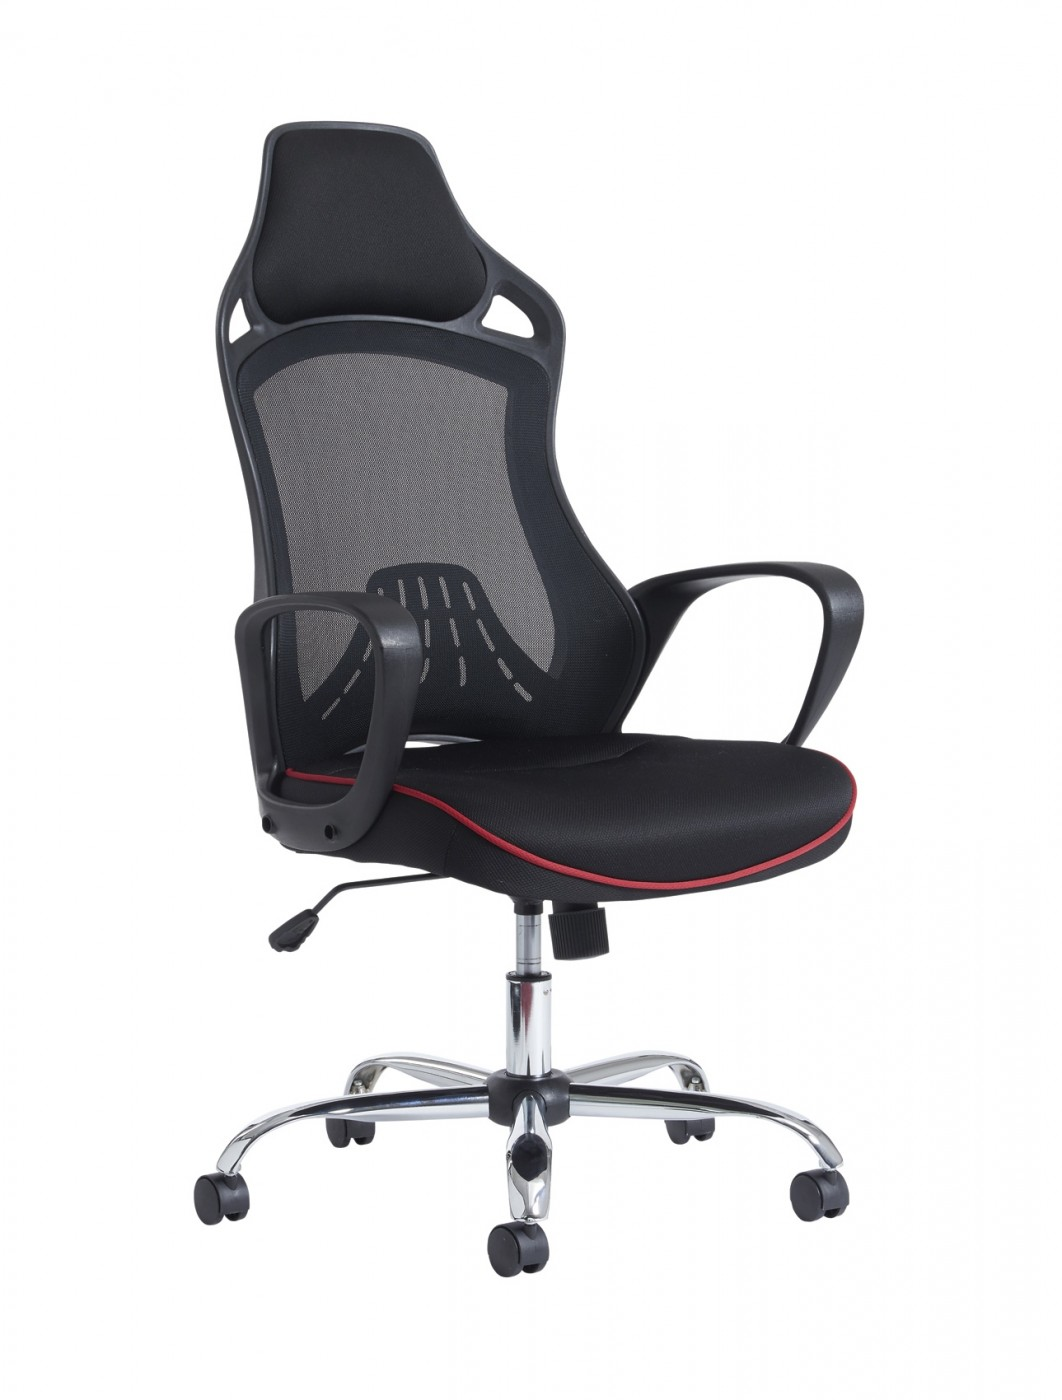 Dams Andretti High Mesh Back Office Chair AND300T1 KR   Enlarged View